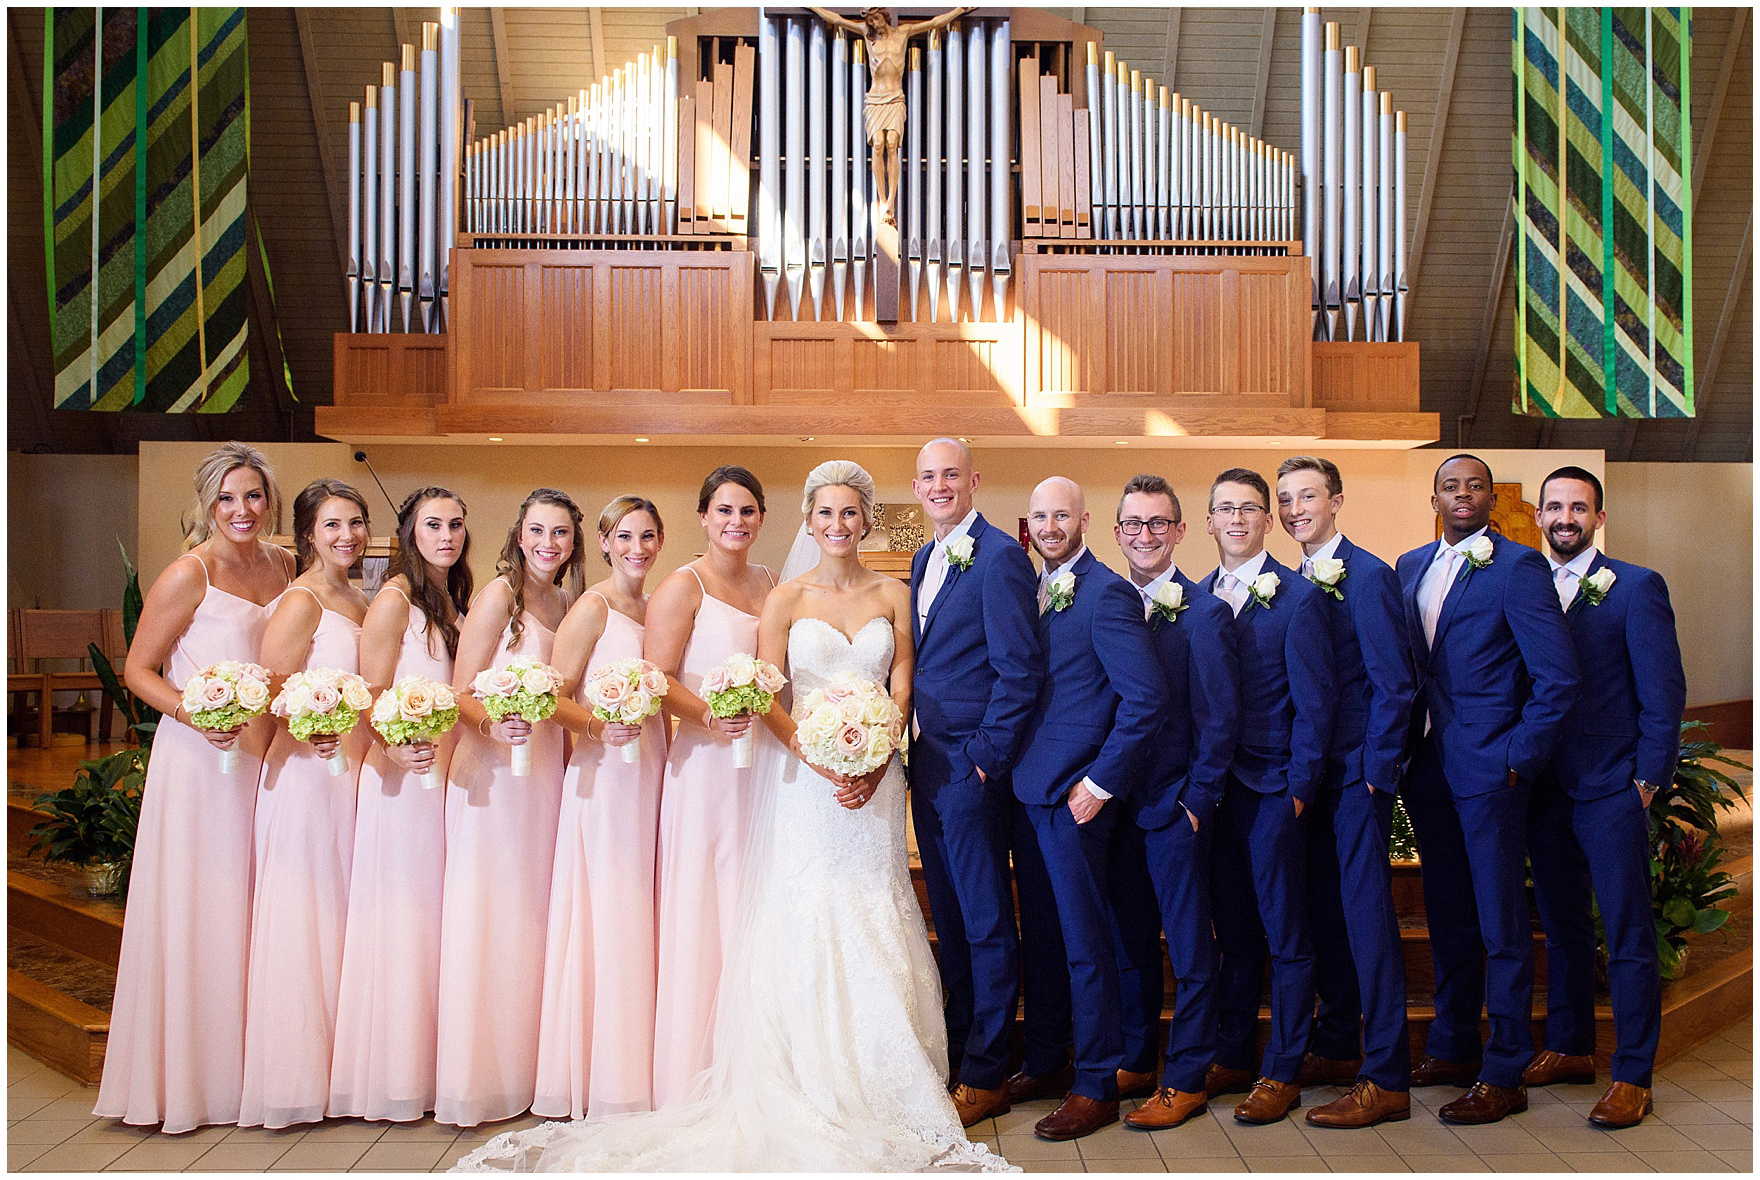 The bridal party poses at a St. Josephs Downers Grove Pinstripes Oak Brook, Illinois wedding.